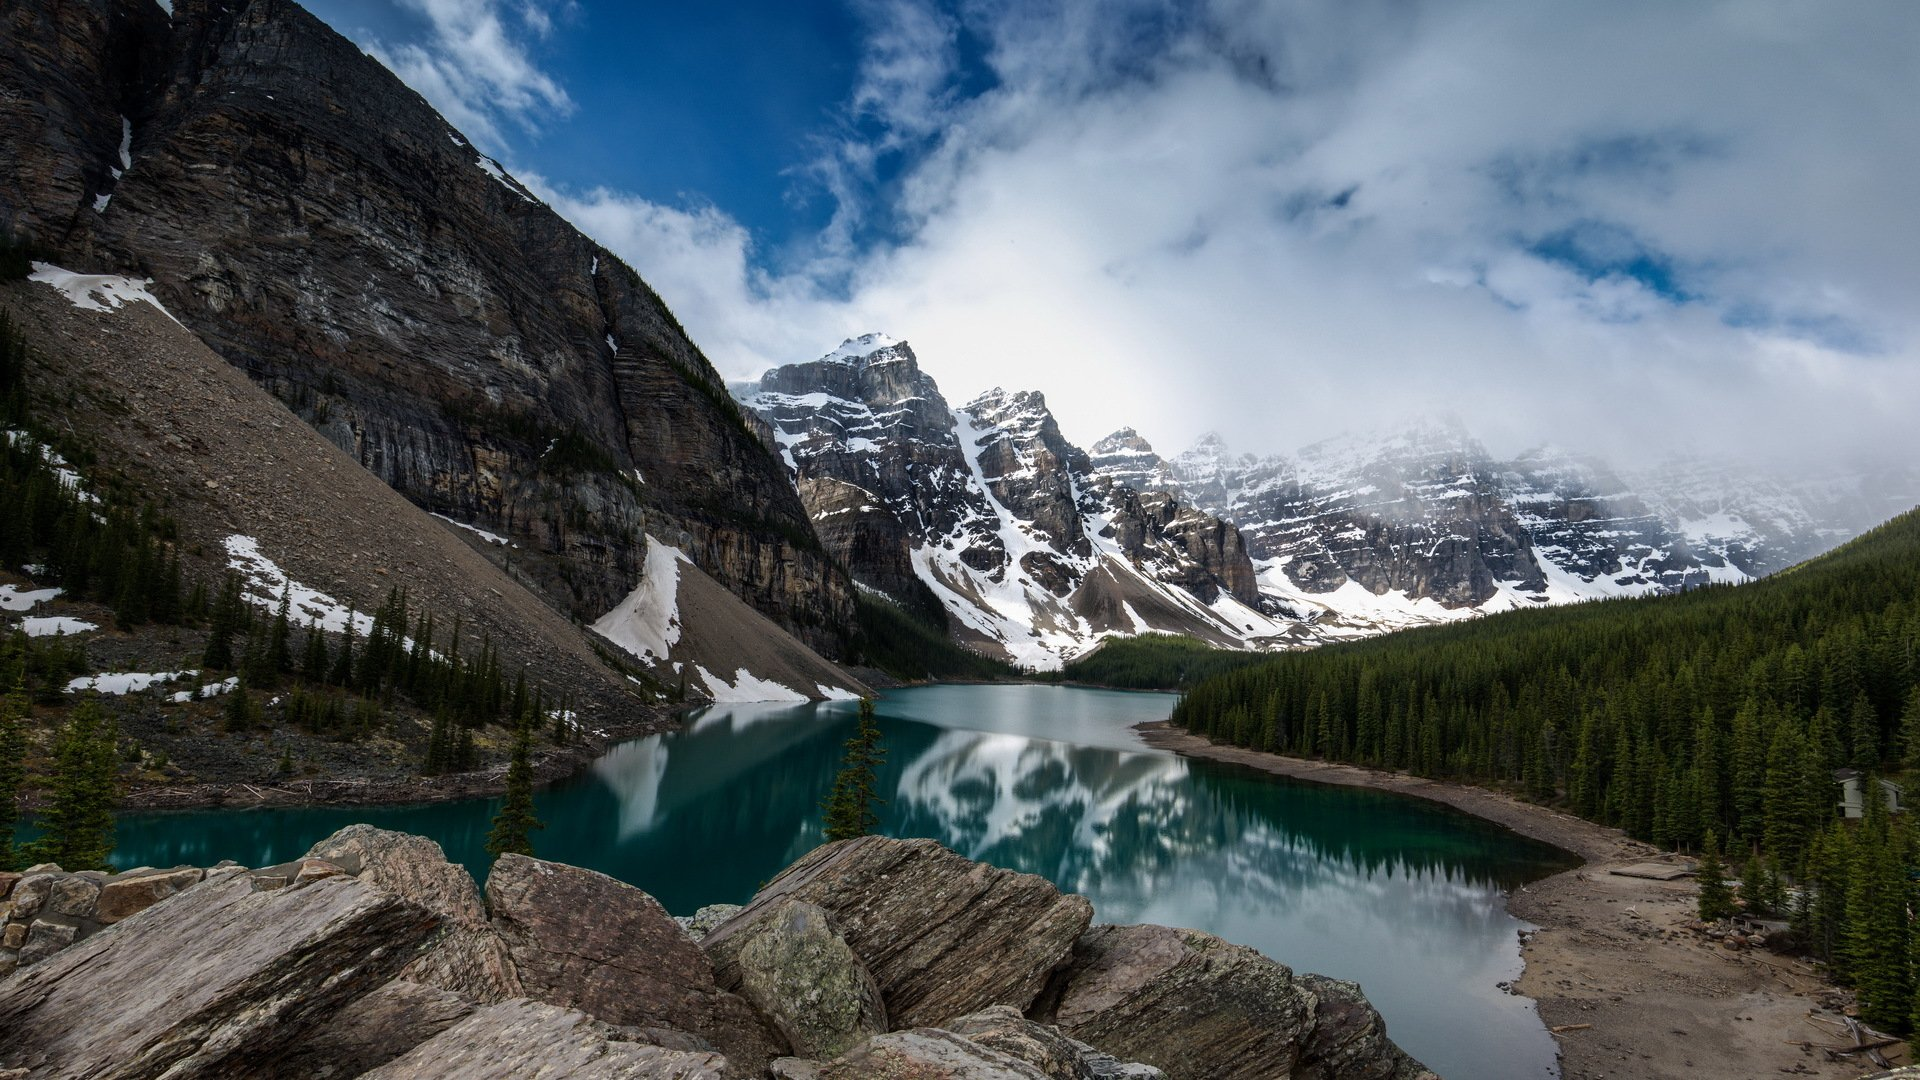 Moraine Lake and Valley of the Ten Peaks, Banff National Park, Canada онлайн